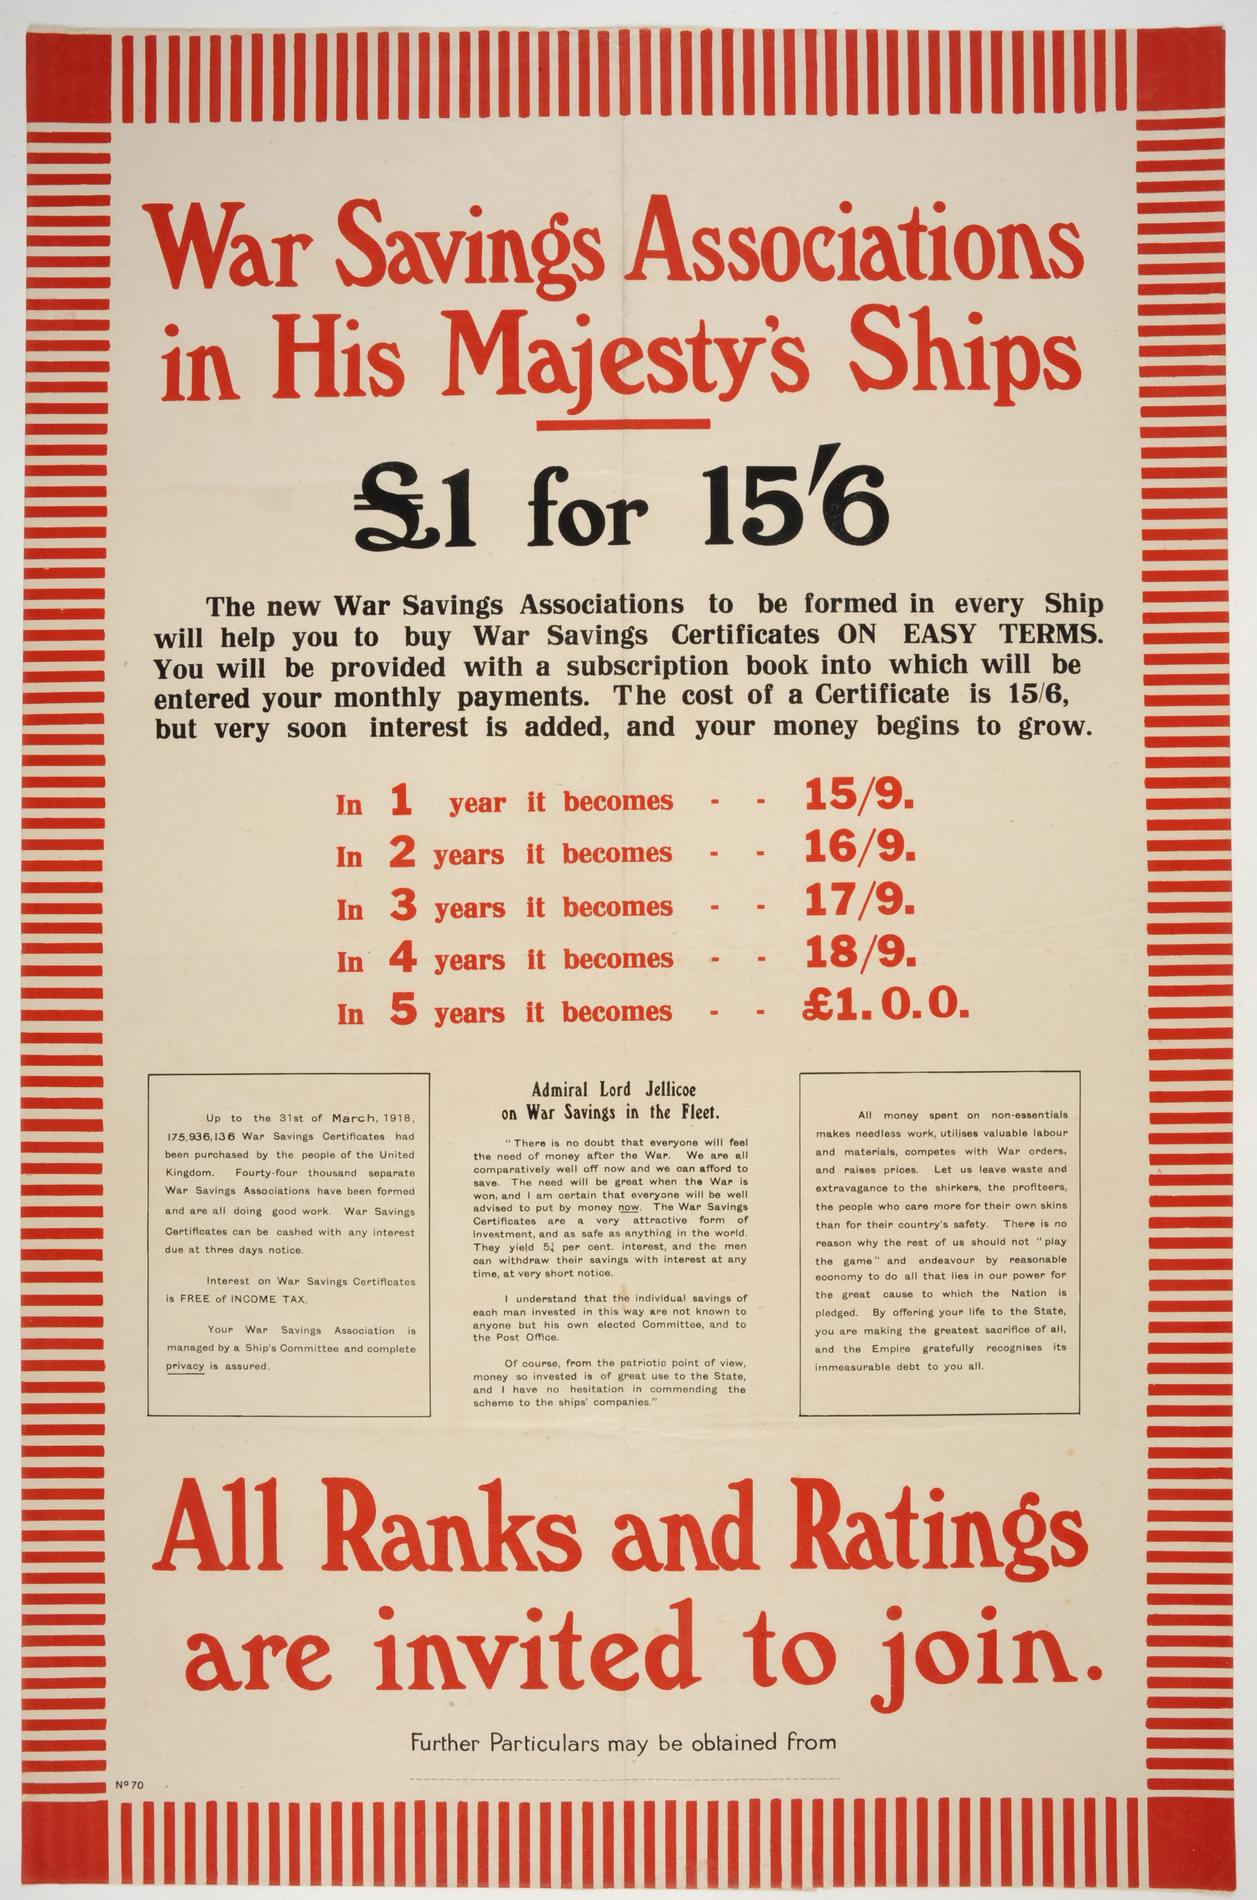 War Savings Associations in His Majesty's ships (Poster)